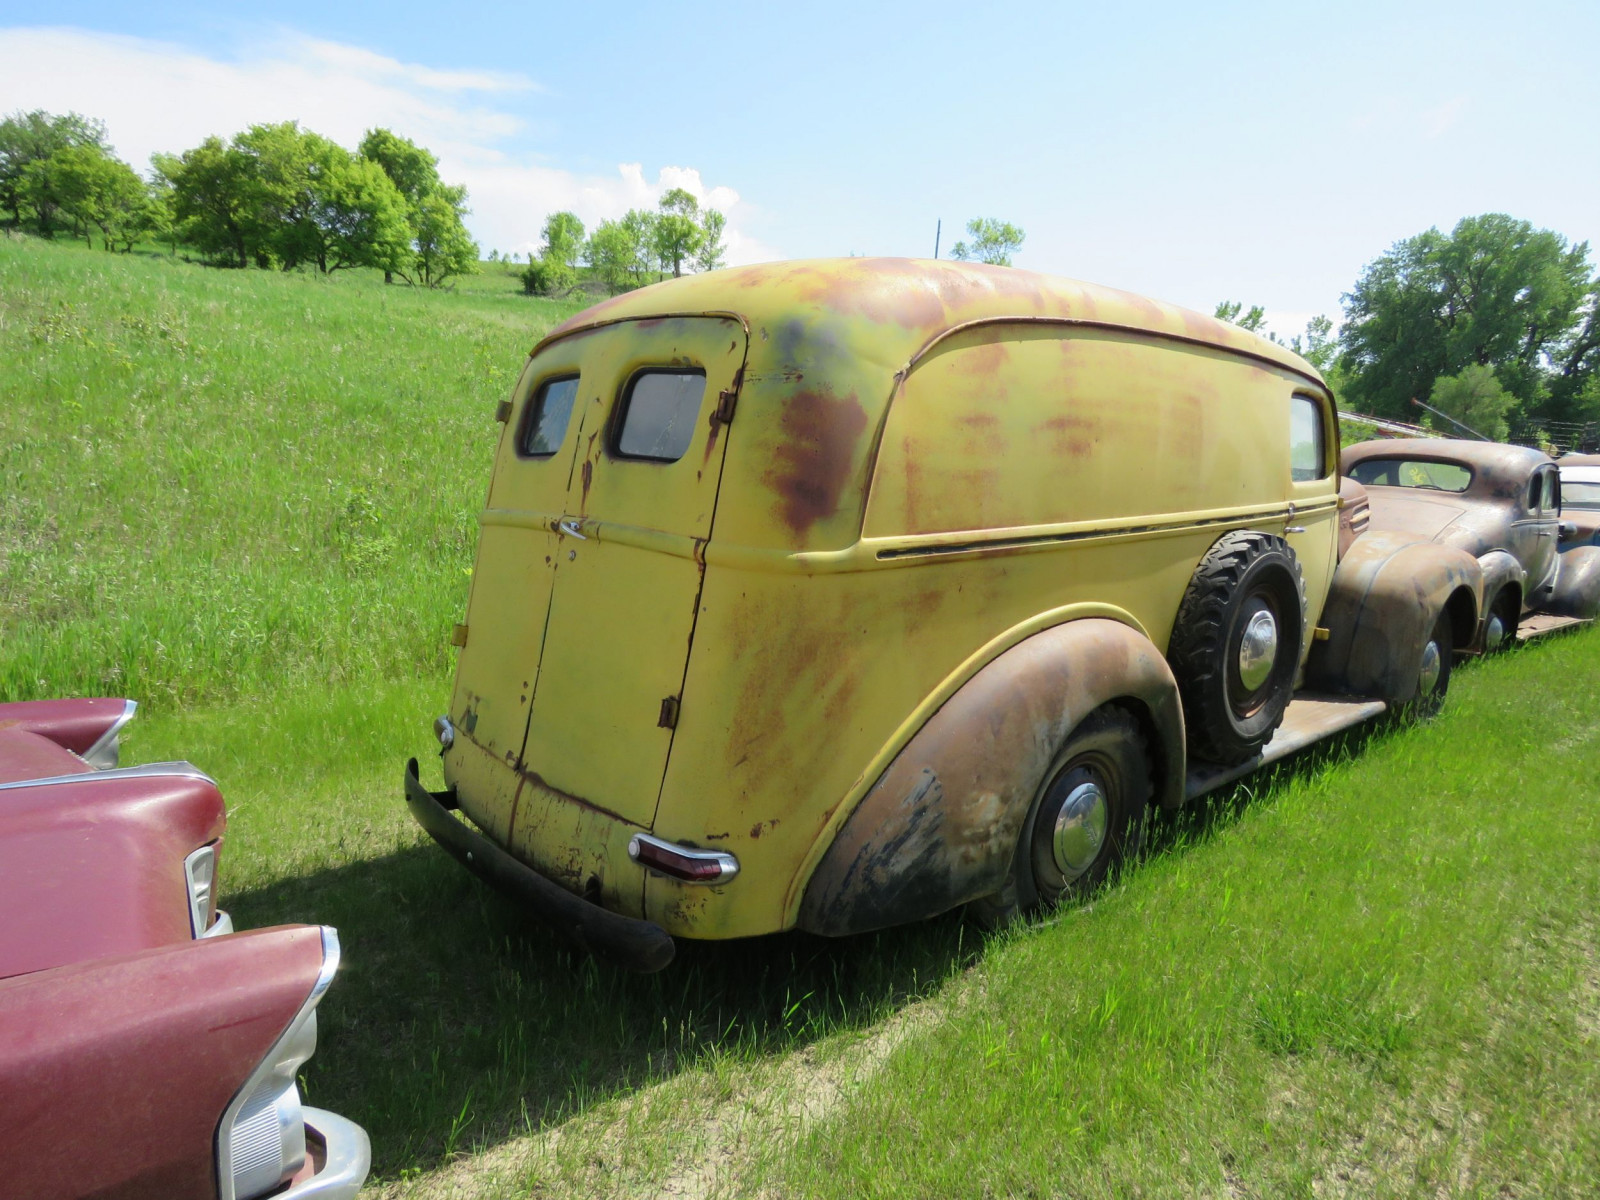 1941 Ford Panel Truck - Image 4